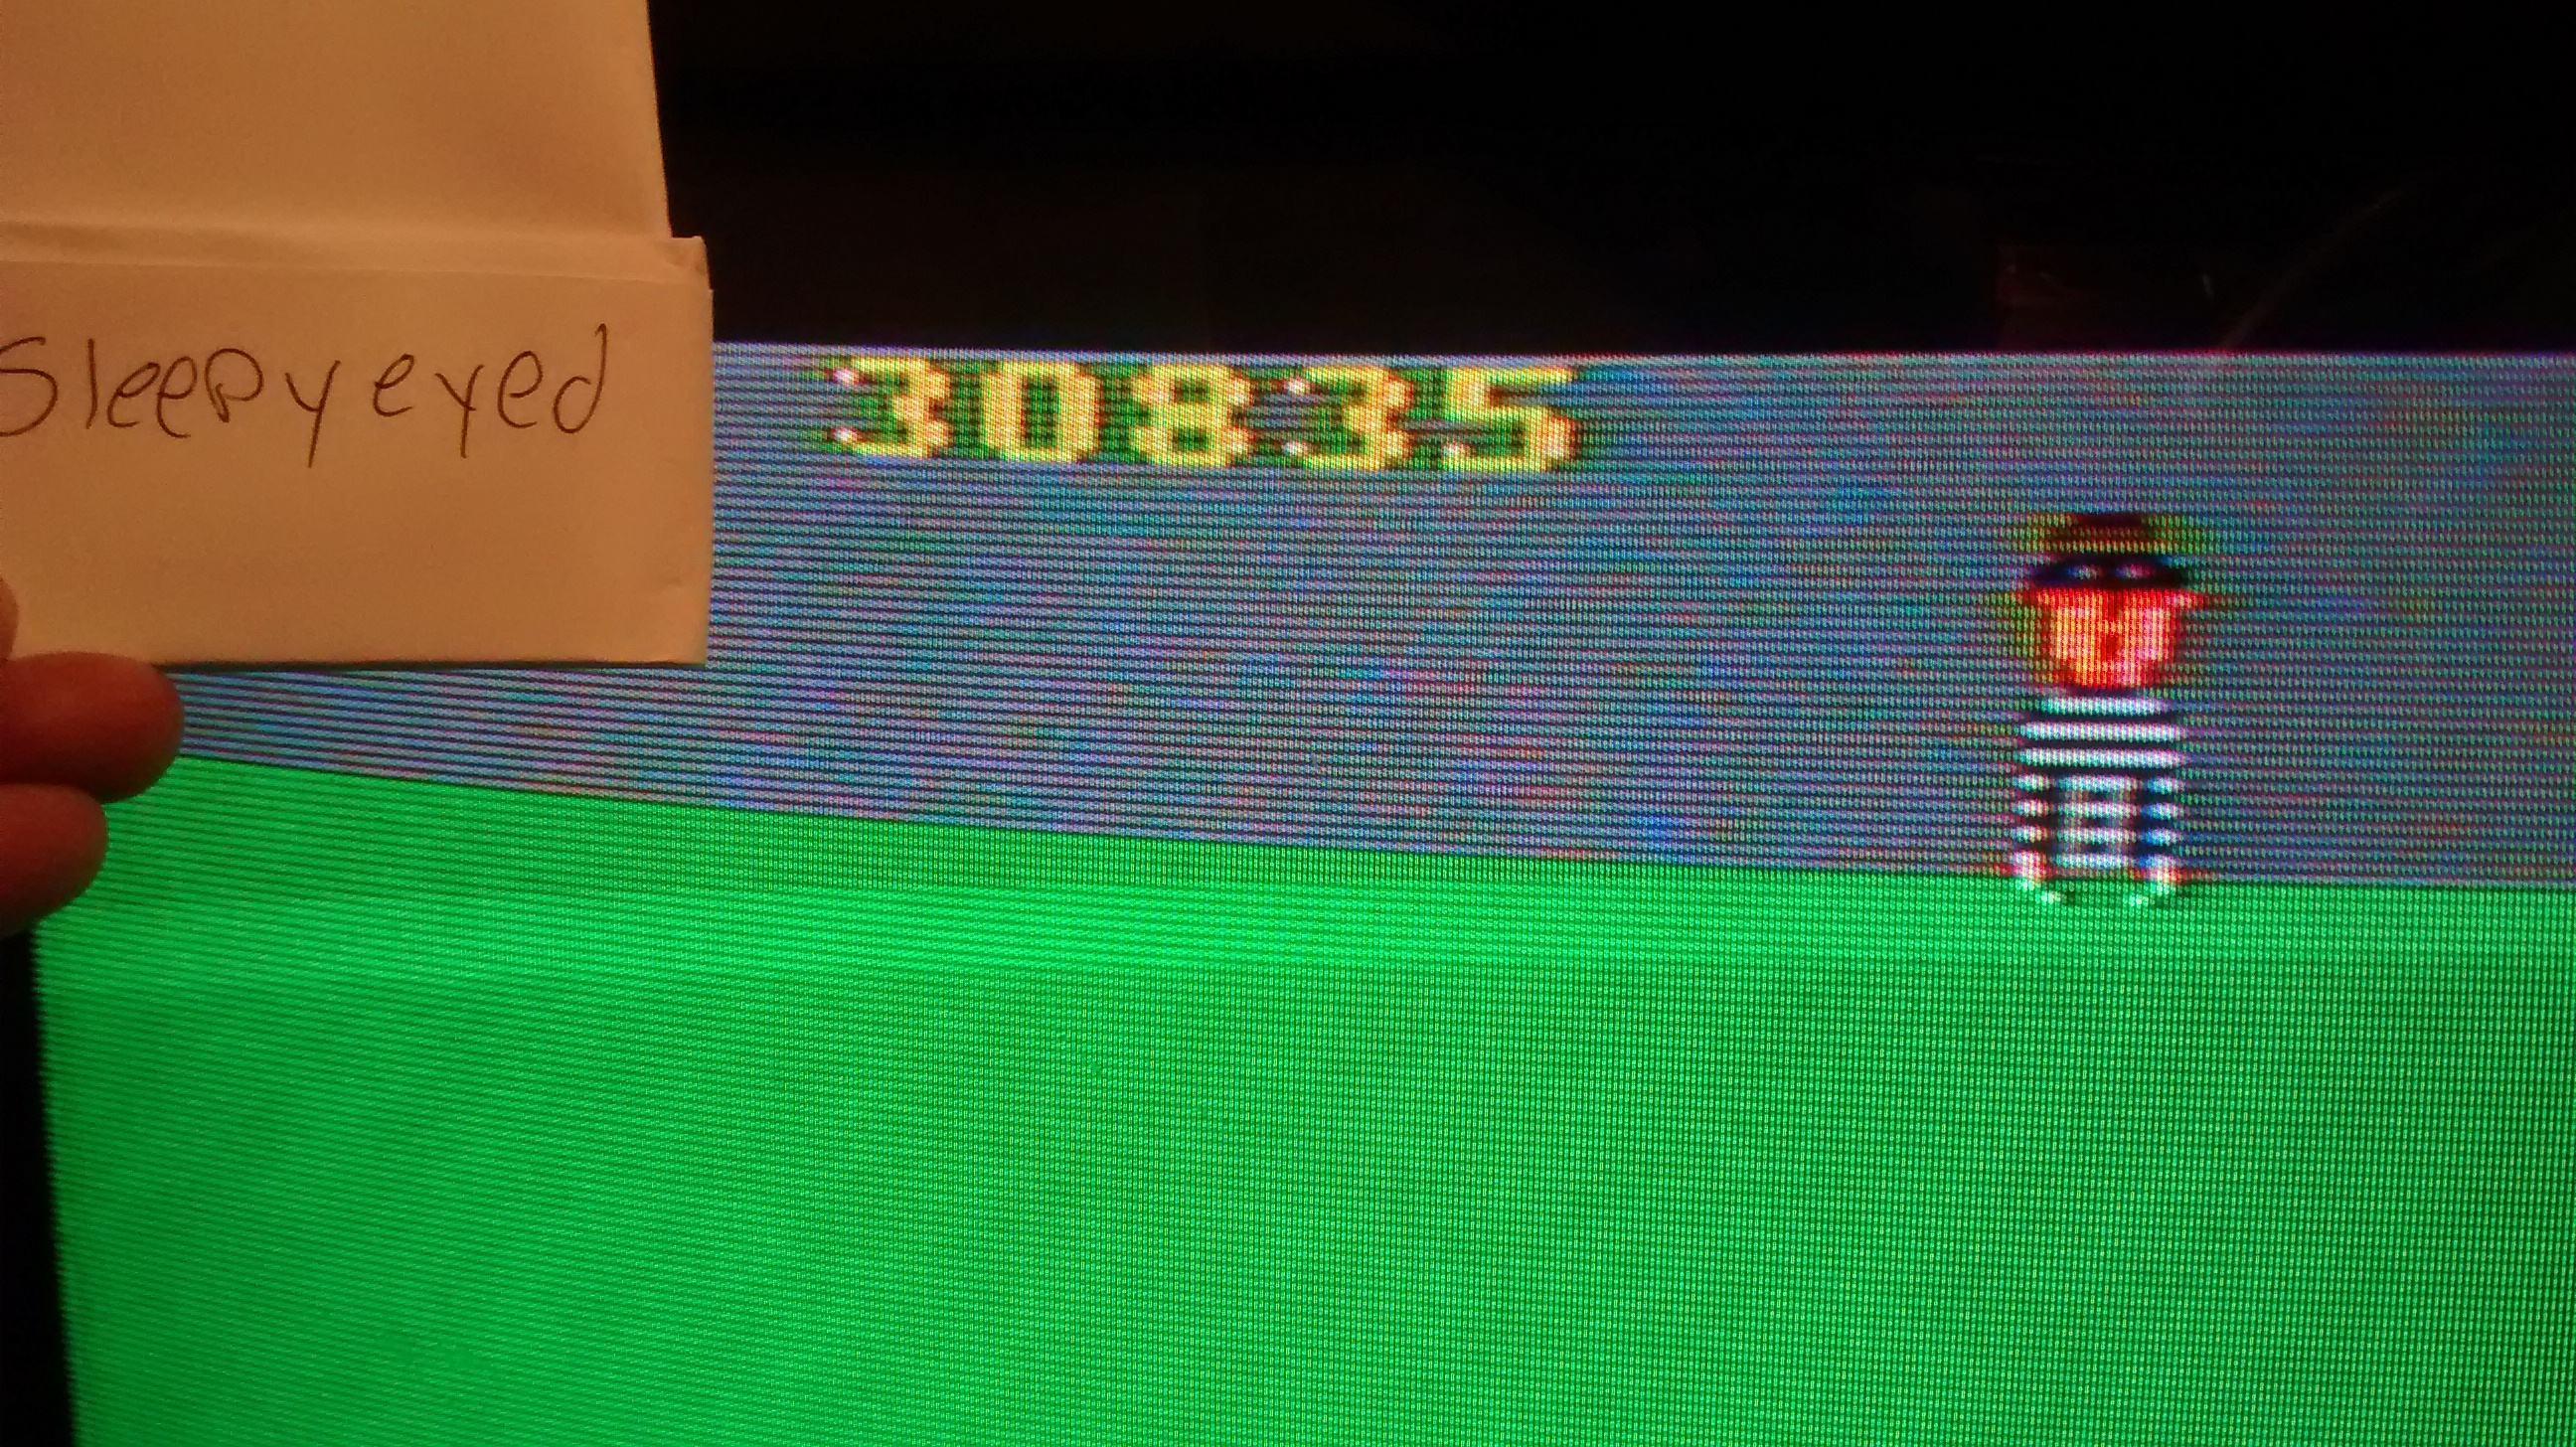 sleepyeyed: Kaboom! (Atari 2600 Novice/B) 30,835 points on 2014-09-01 19:28:02